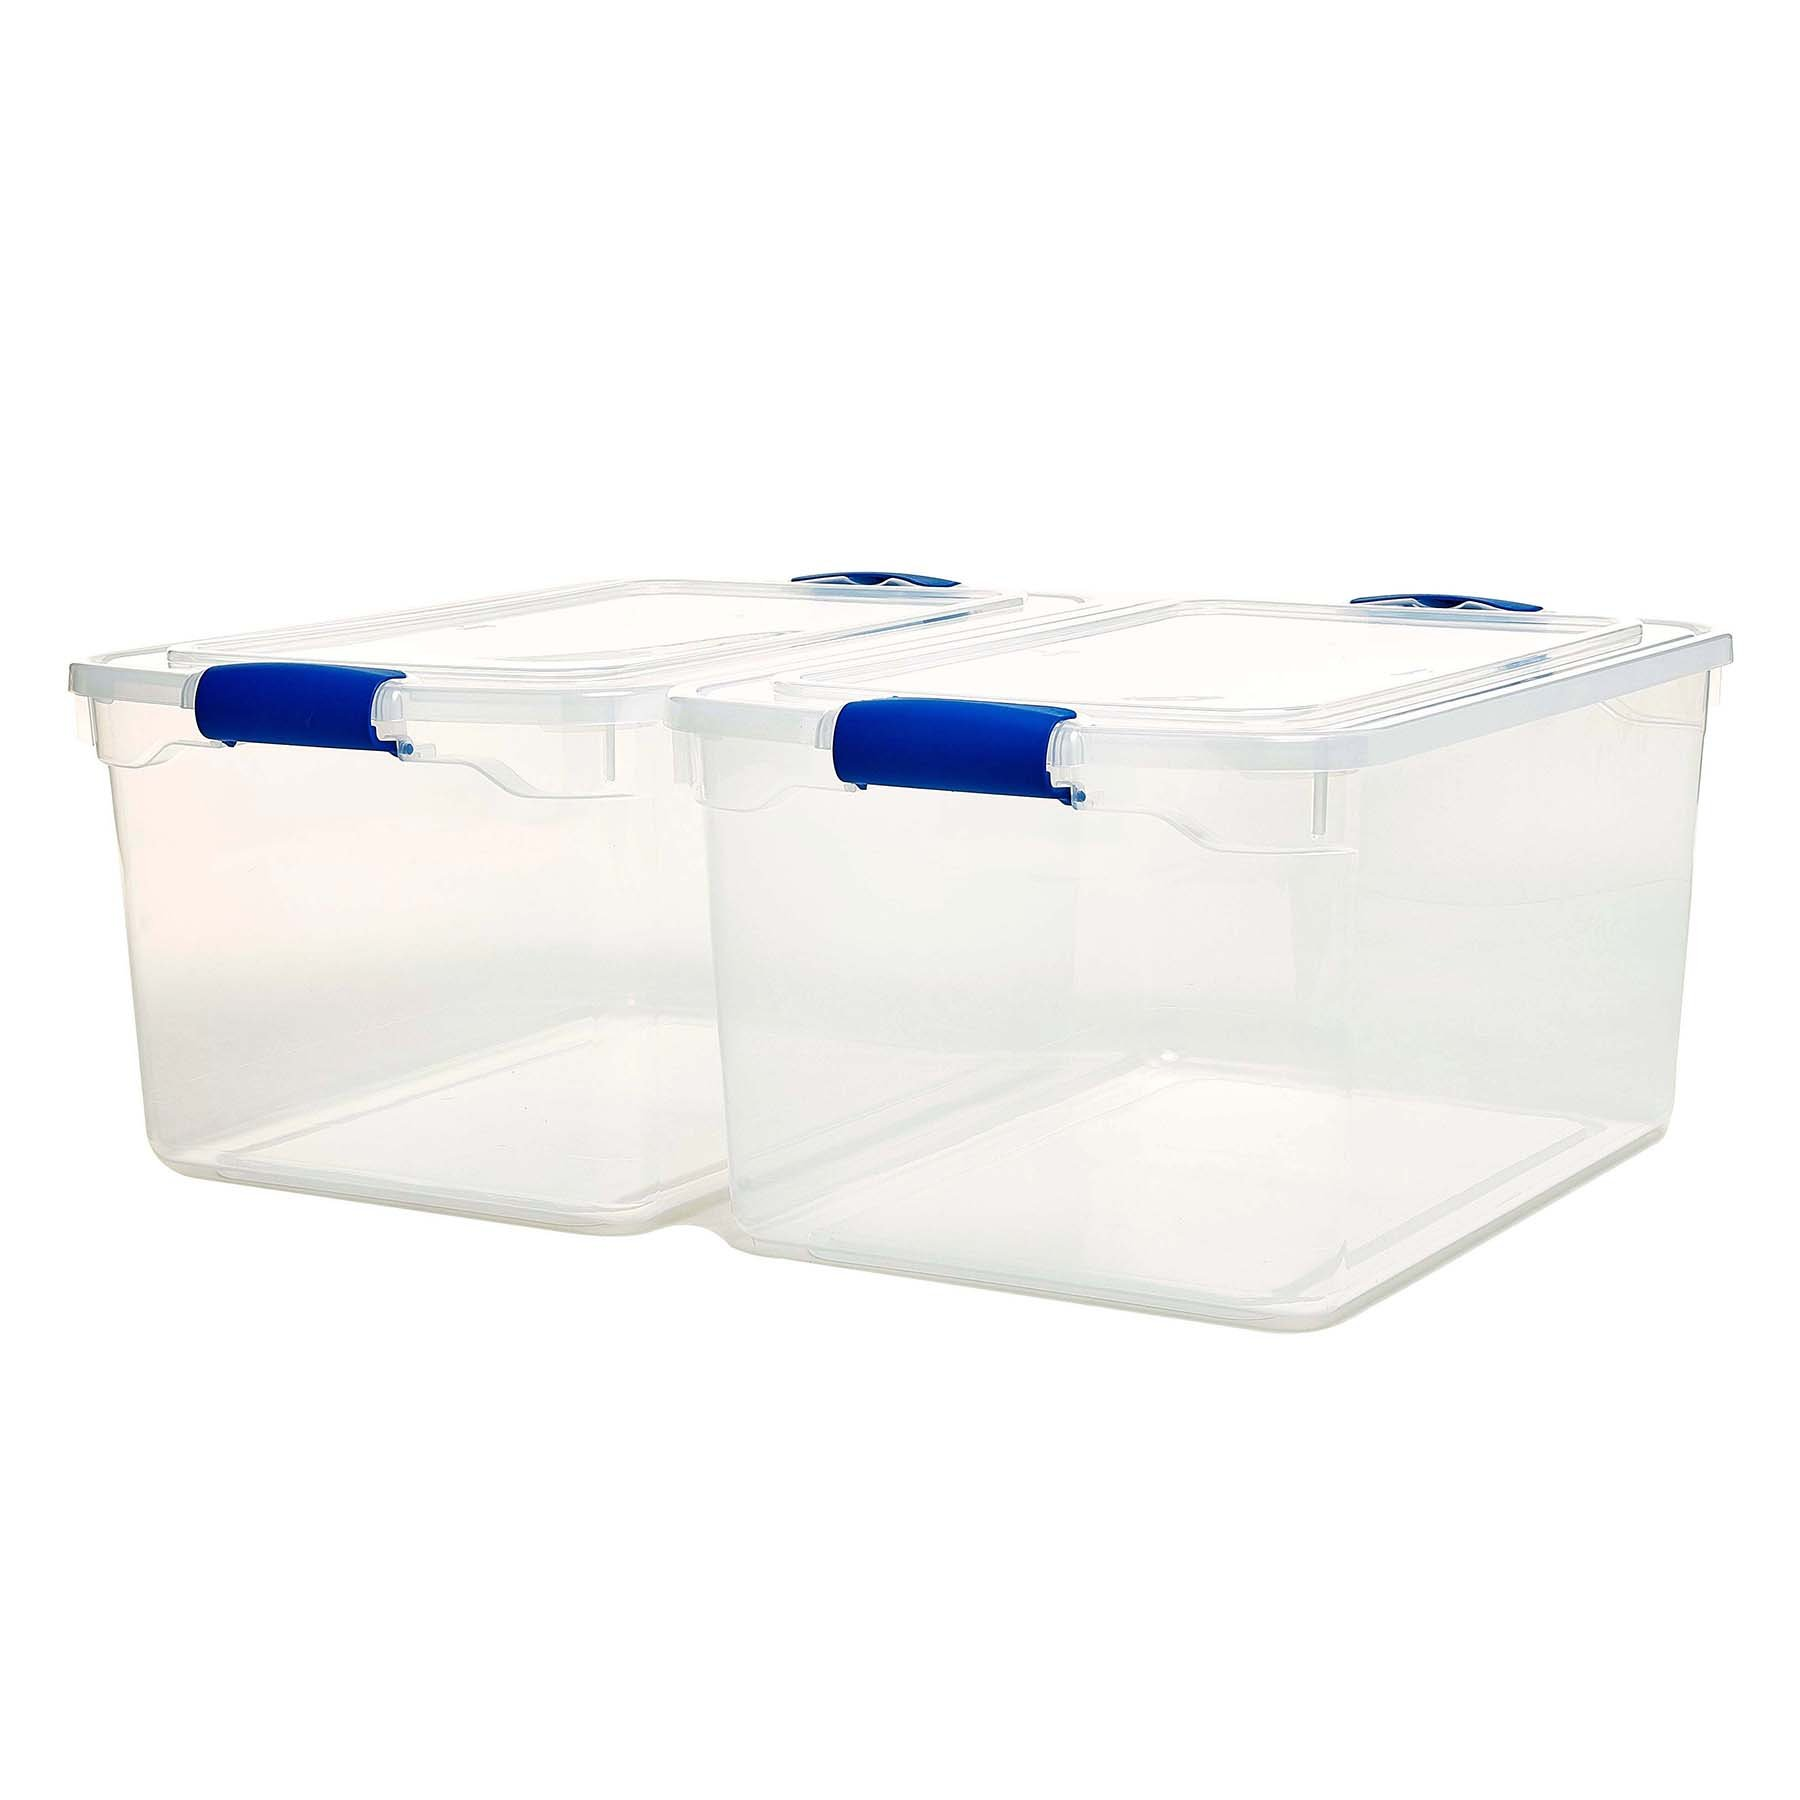 Homz Plastic Storage, Modular Stackable Storage Bins with Blue Latching Handles, 66 Quart, Clear, 2-Pack by Homz (Image #3)